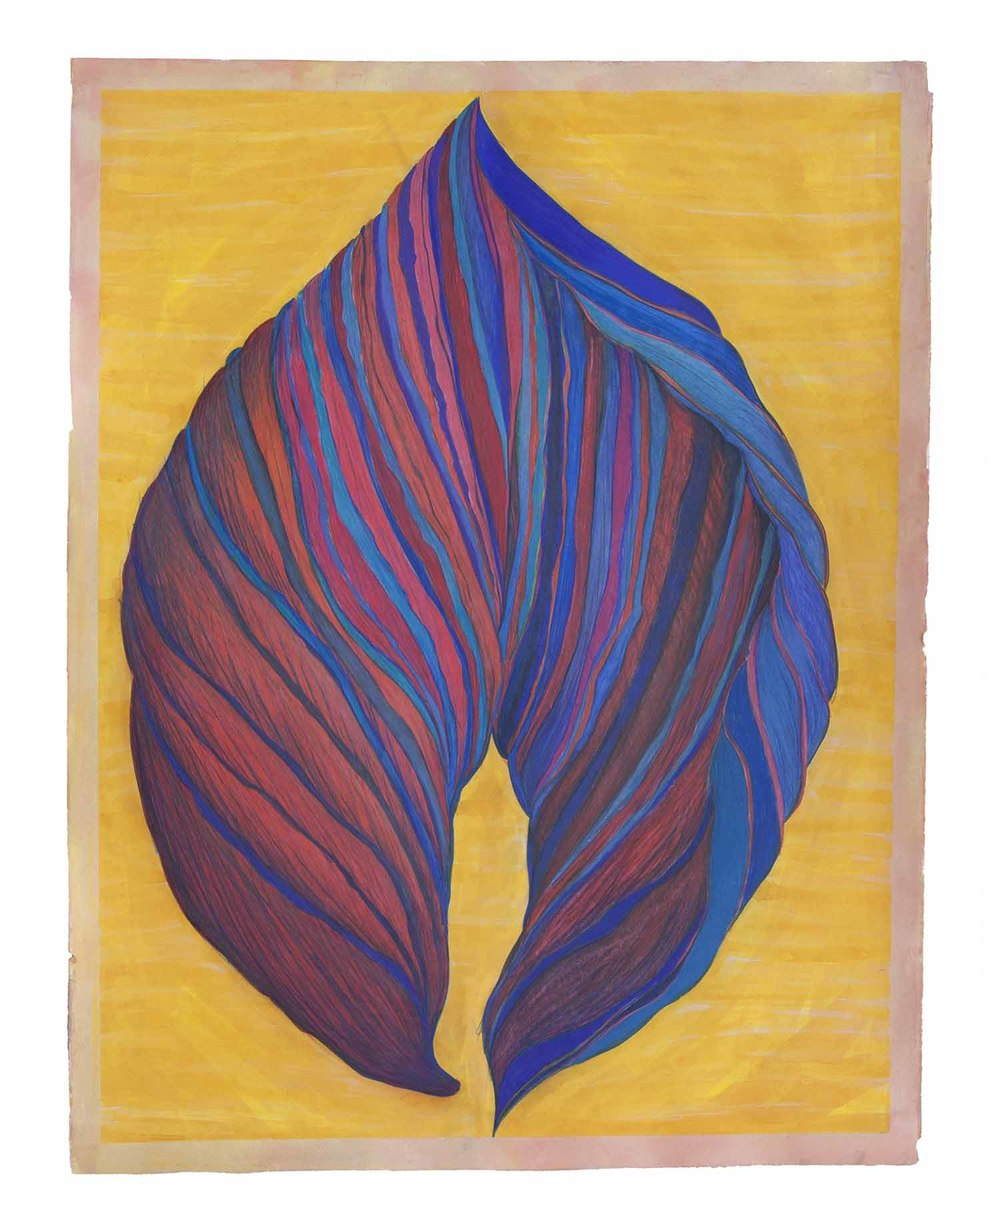 Leaf Form: Blue on Yellow